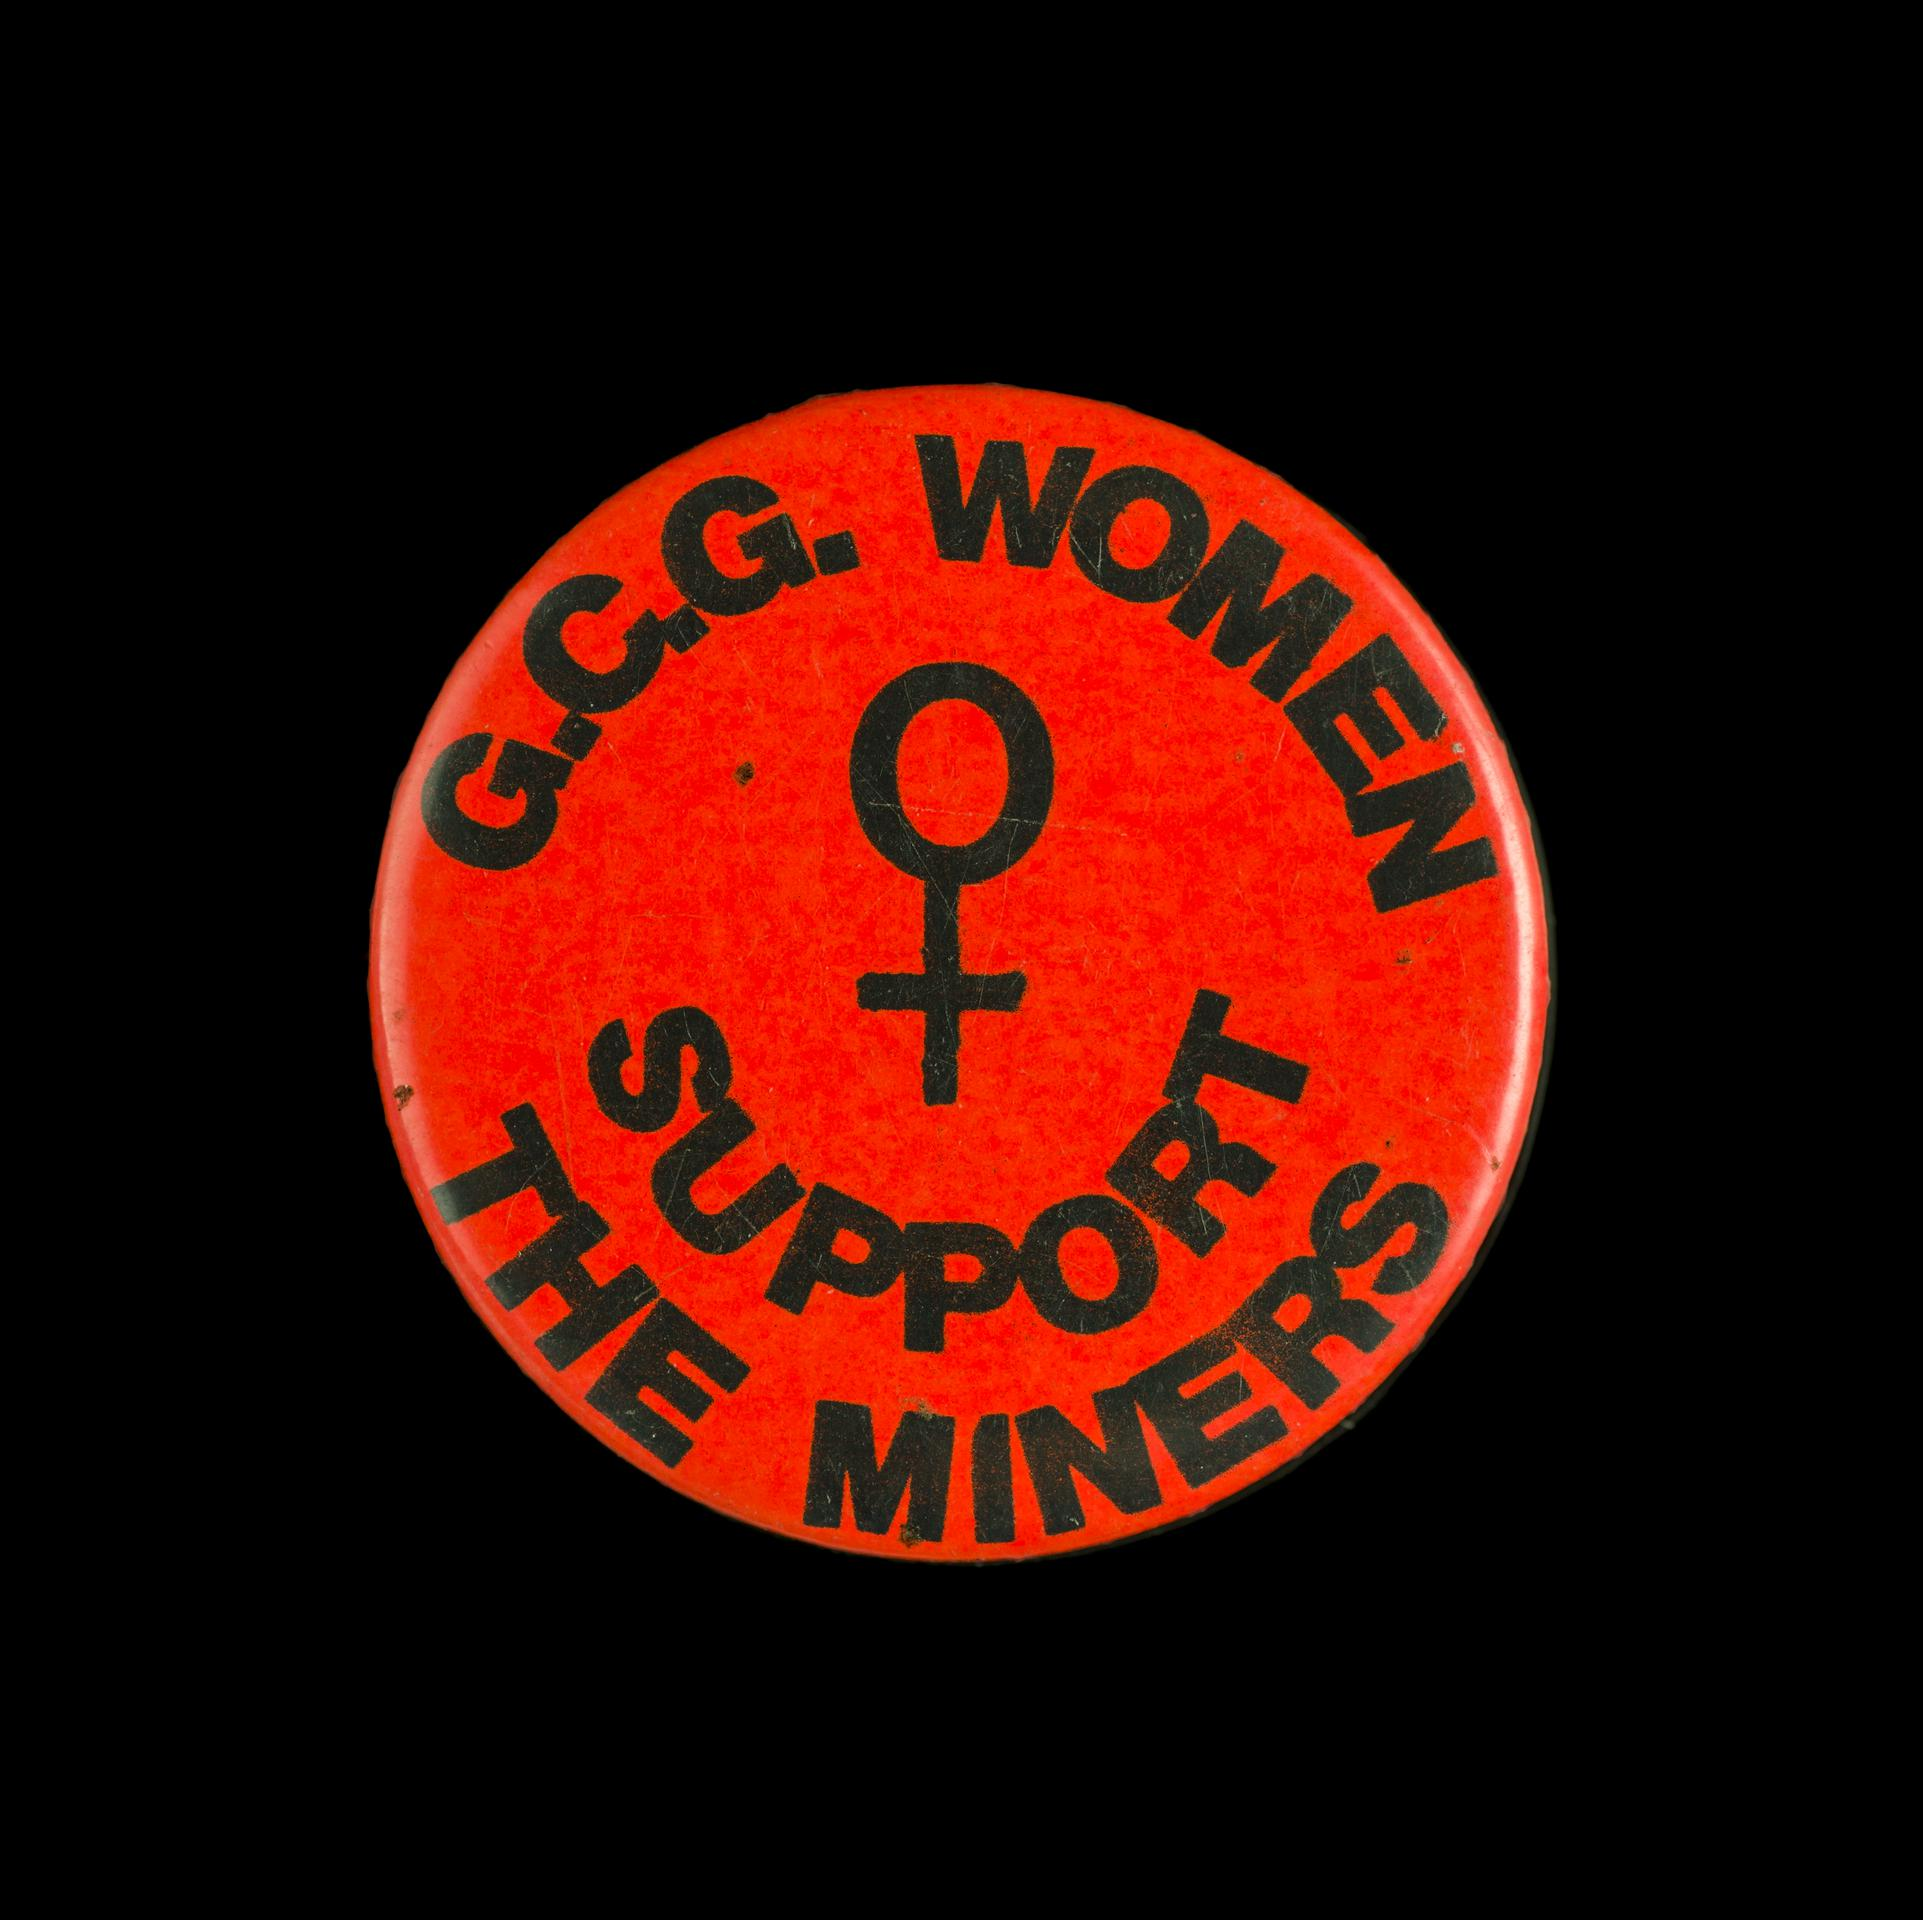 Badge, G.C.G Women Support the Miners'.